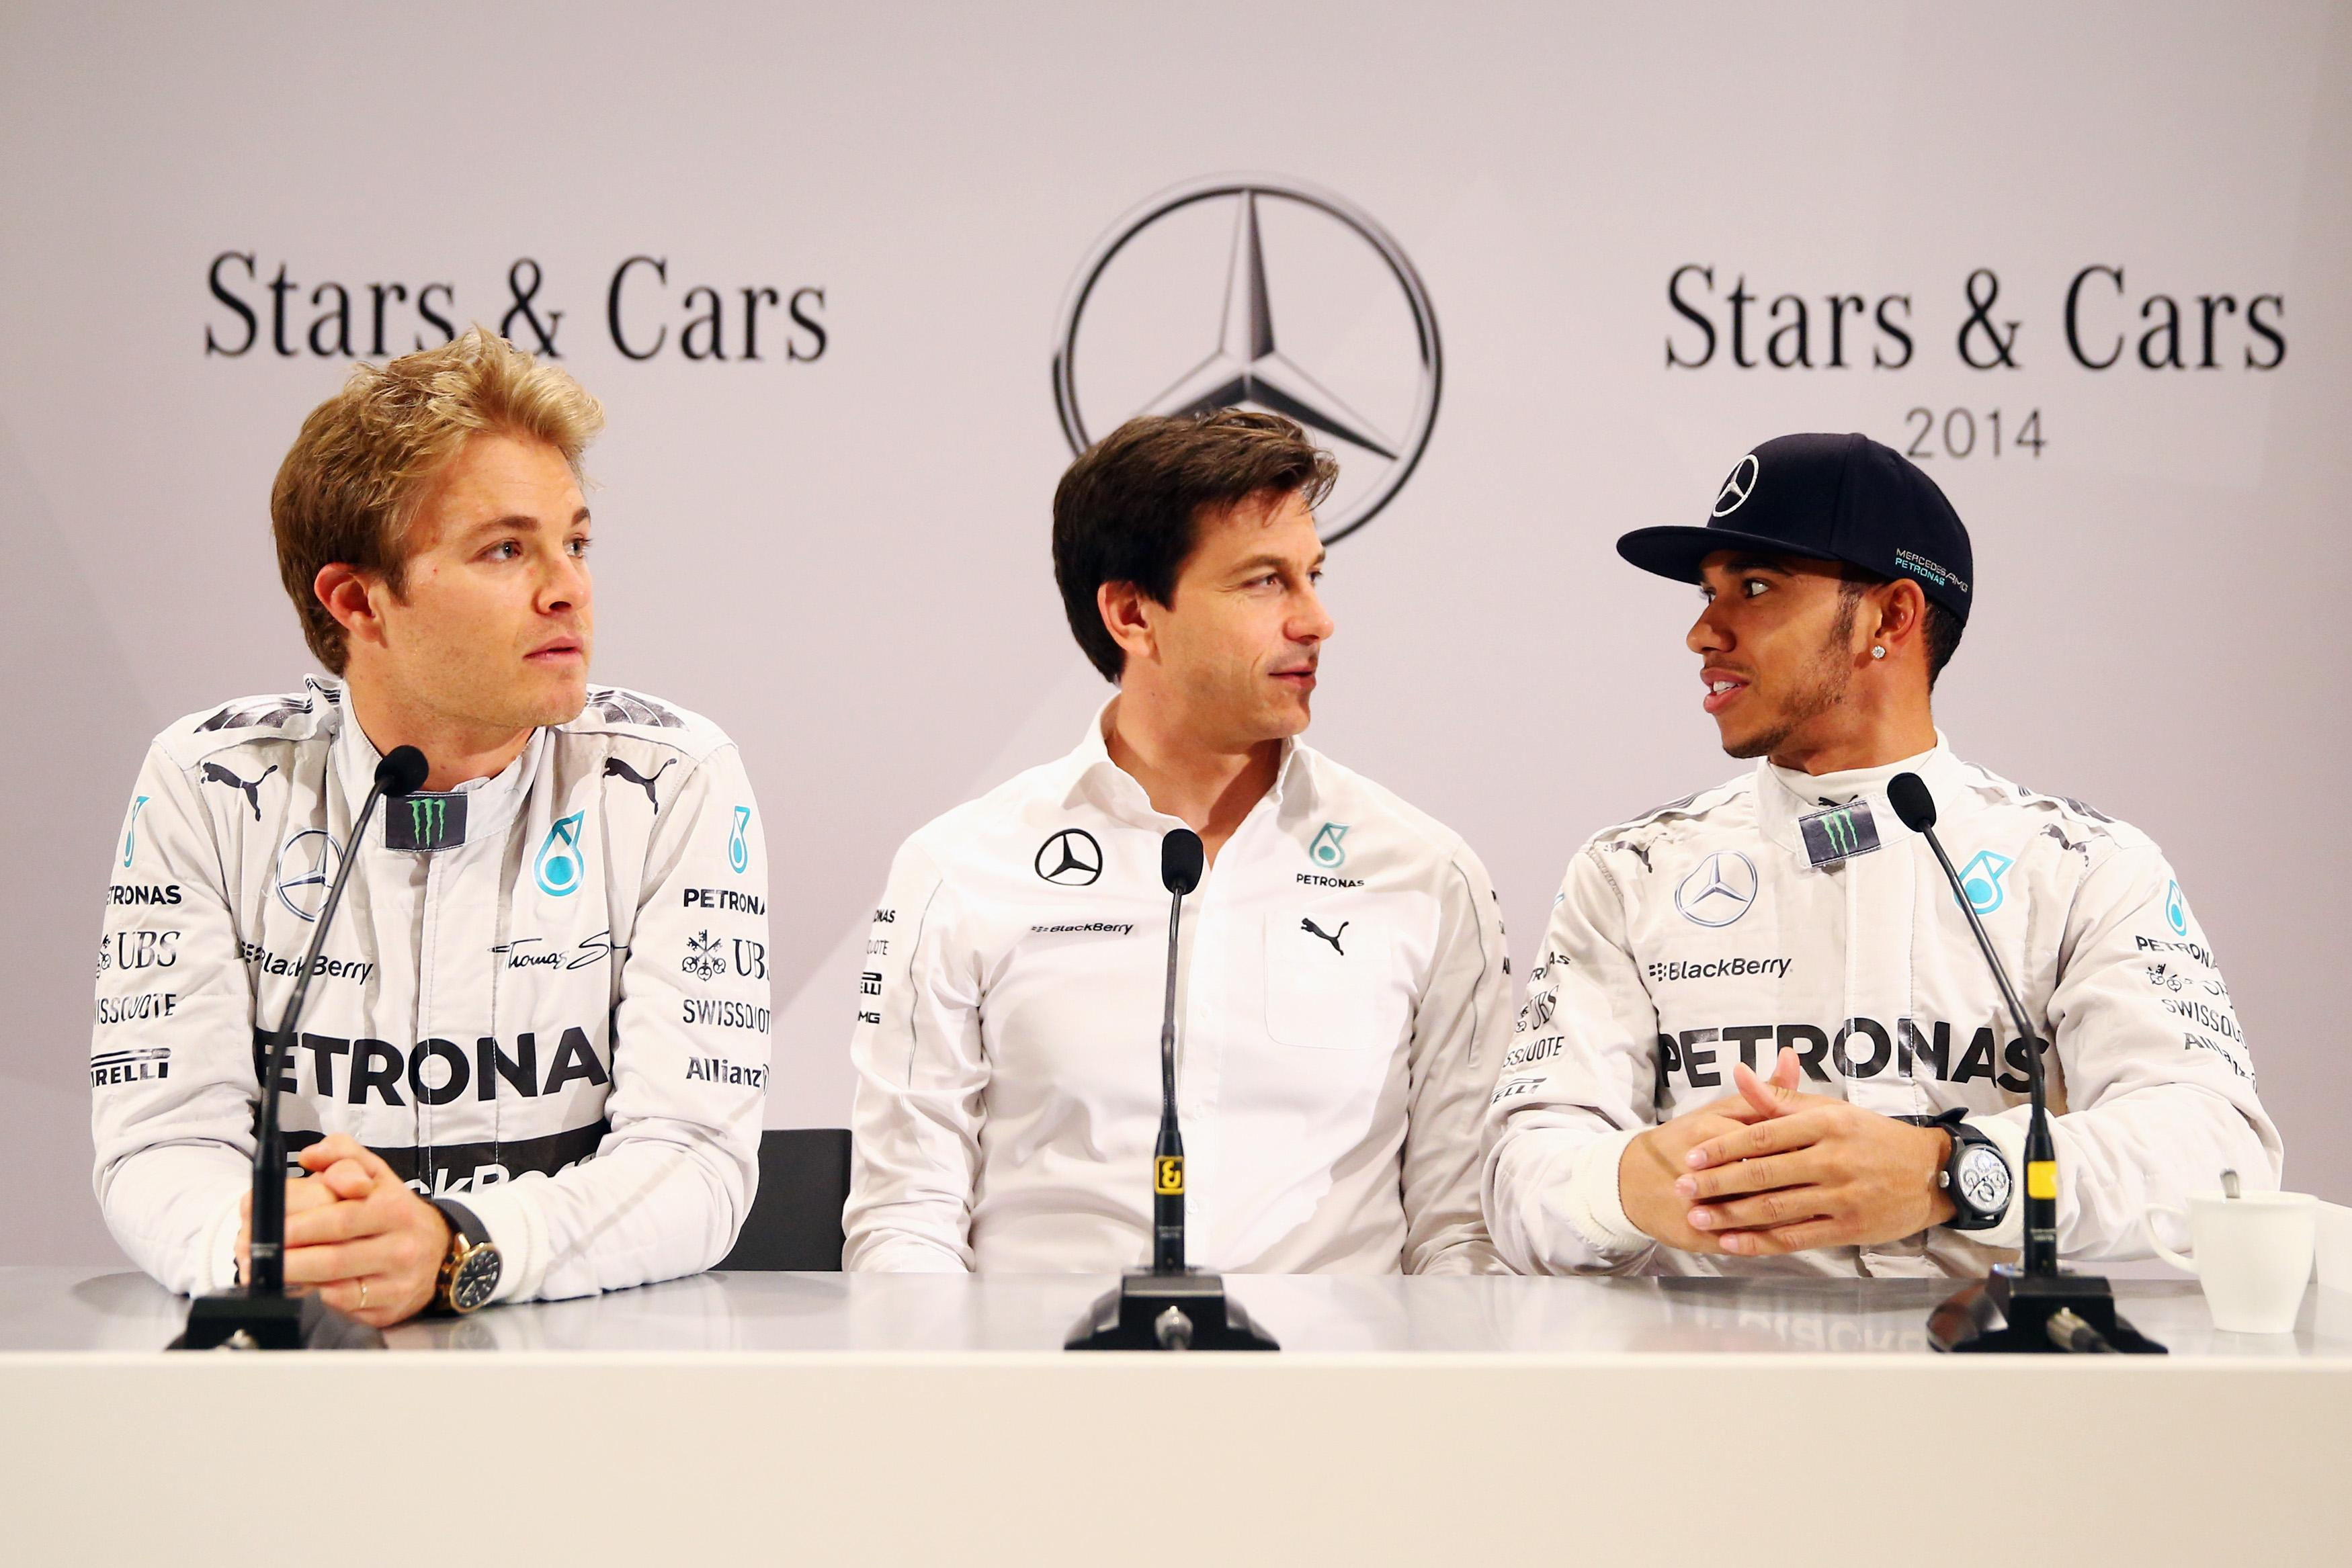 Mercedes have dominated Drivers' Championship with Lewis Hamilton and Nico Rosberg winning last four titles